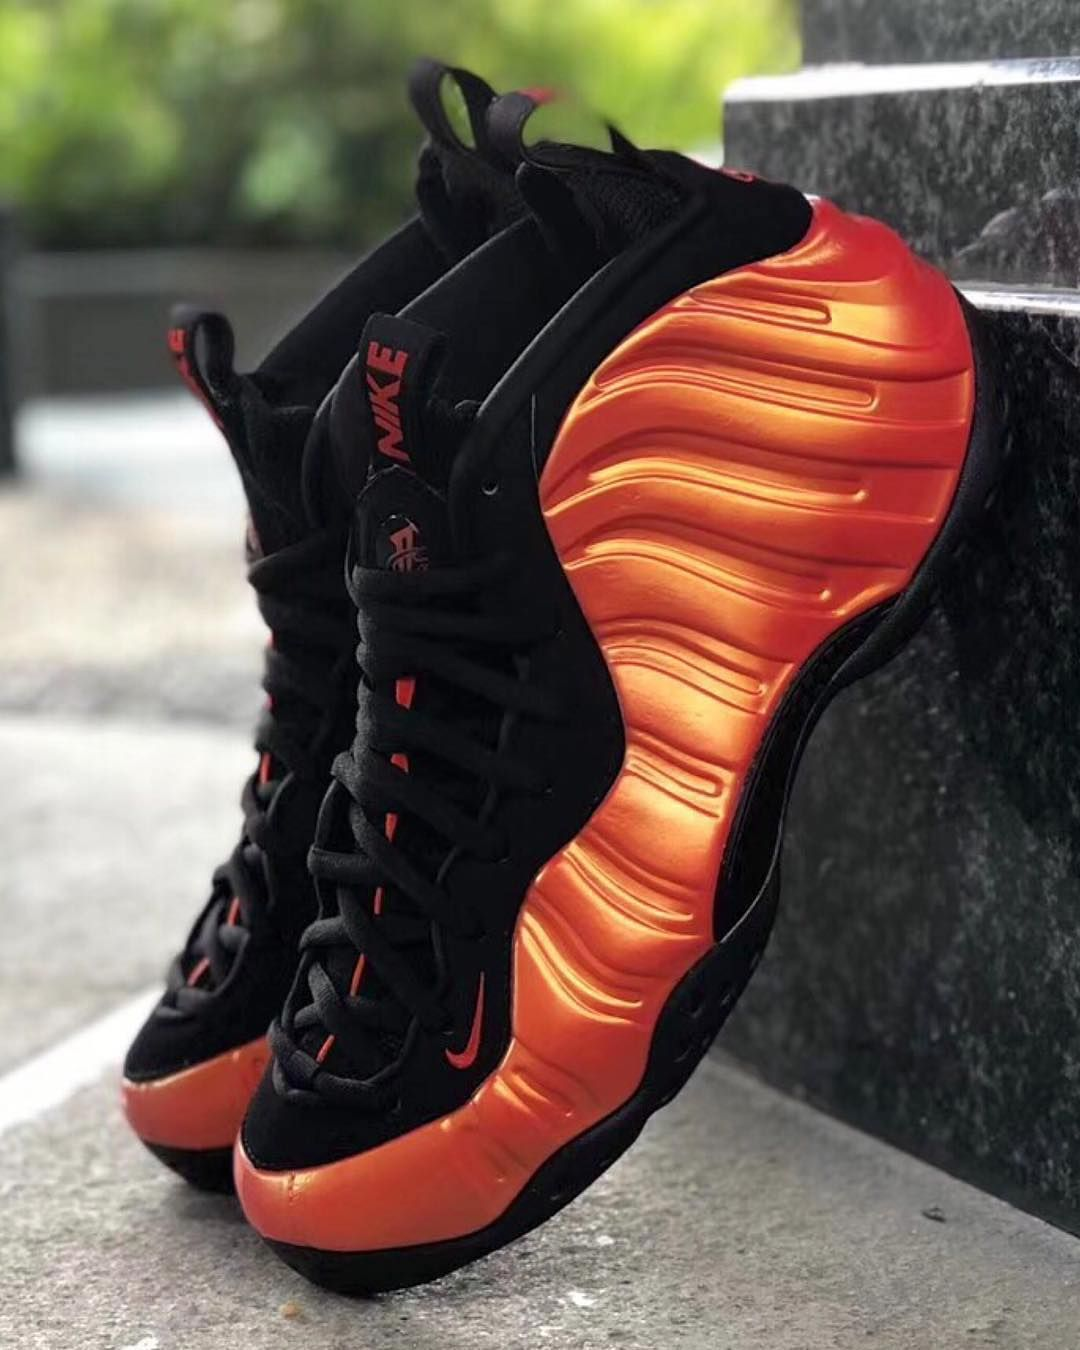 05dd4aae506 Nike Air Foamposite One Habanero Red Oct. 26th